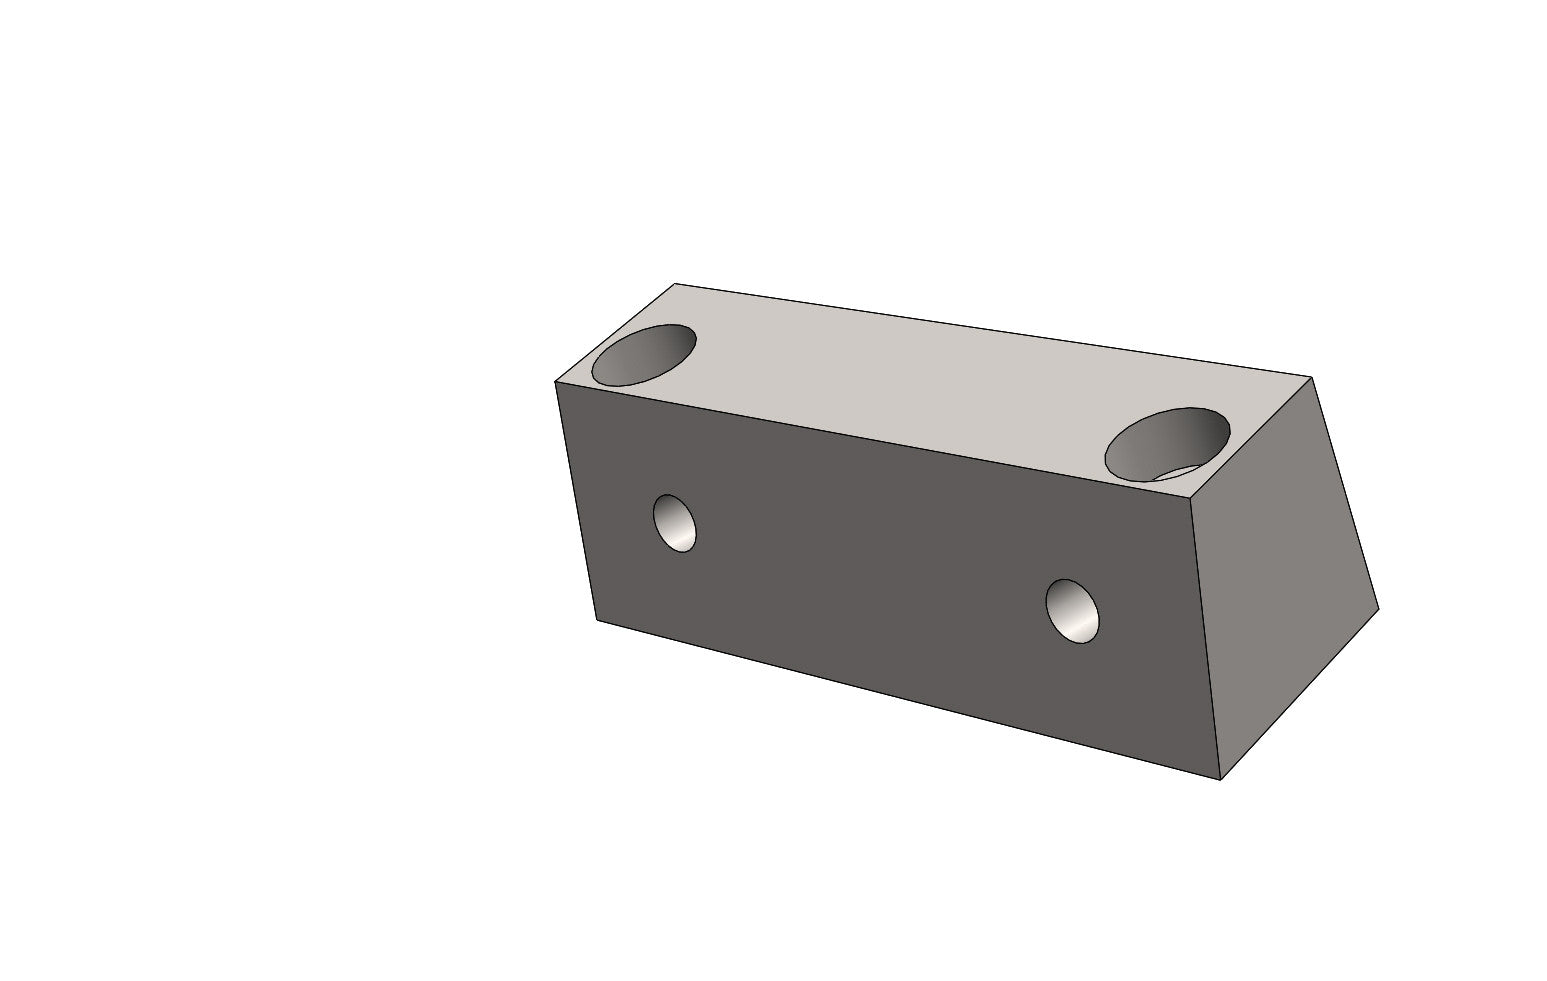 TB13056A MOUNTING BLOCK UPPER - King TB4 Spare Part